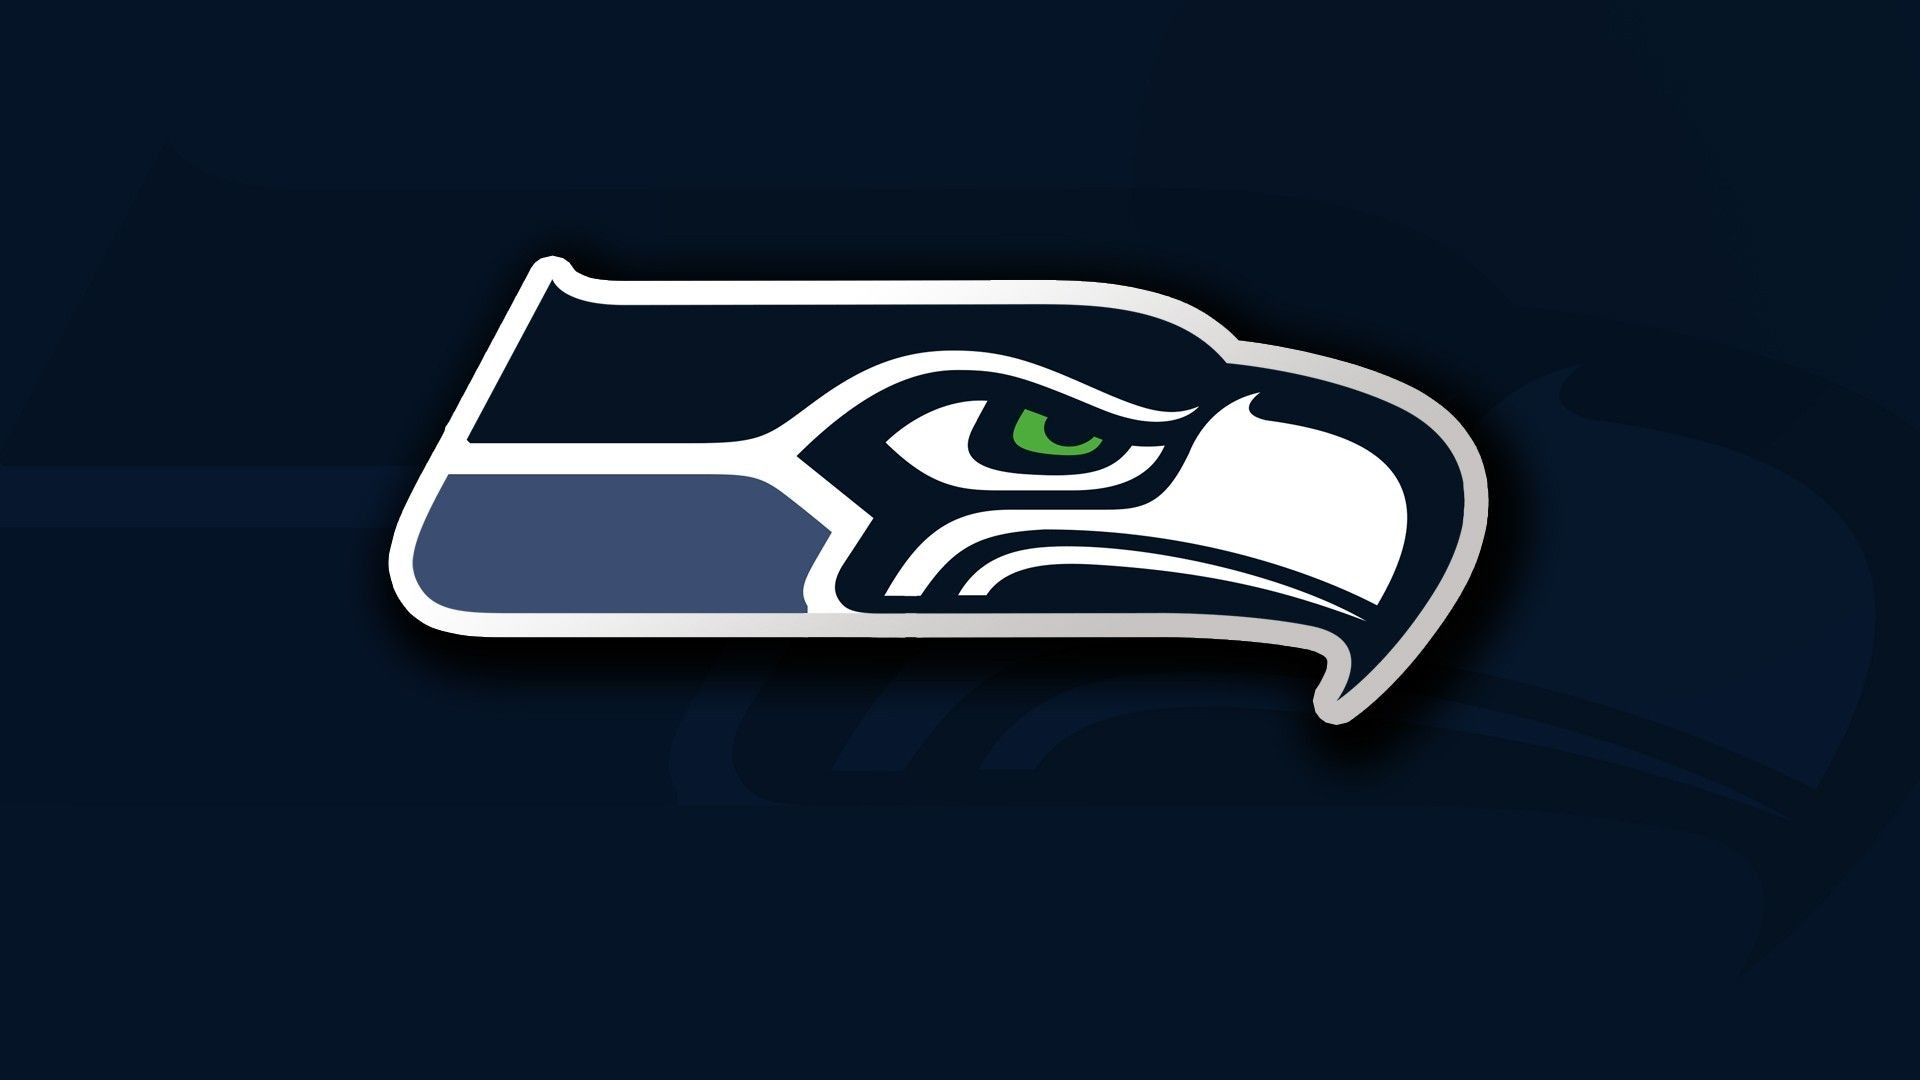 1920x1080 Seattle Seahawks Wallpaper HD | Best NFL Wallpapers